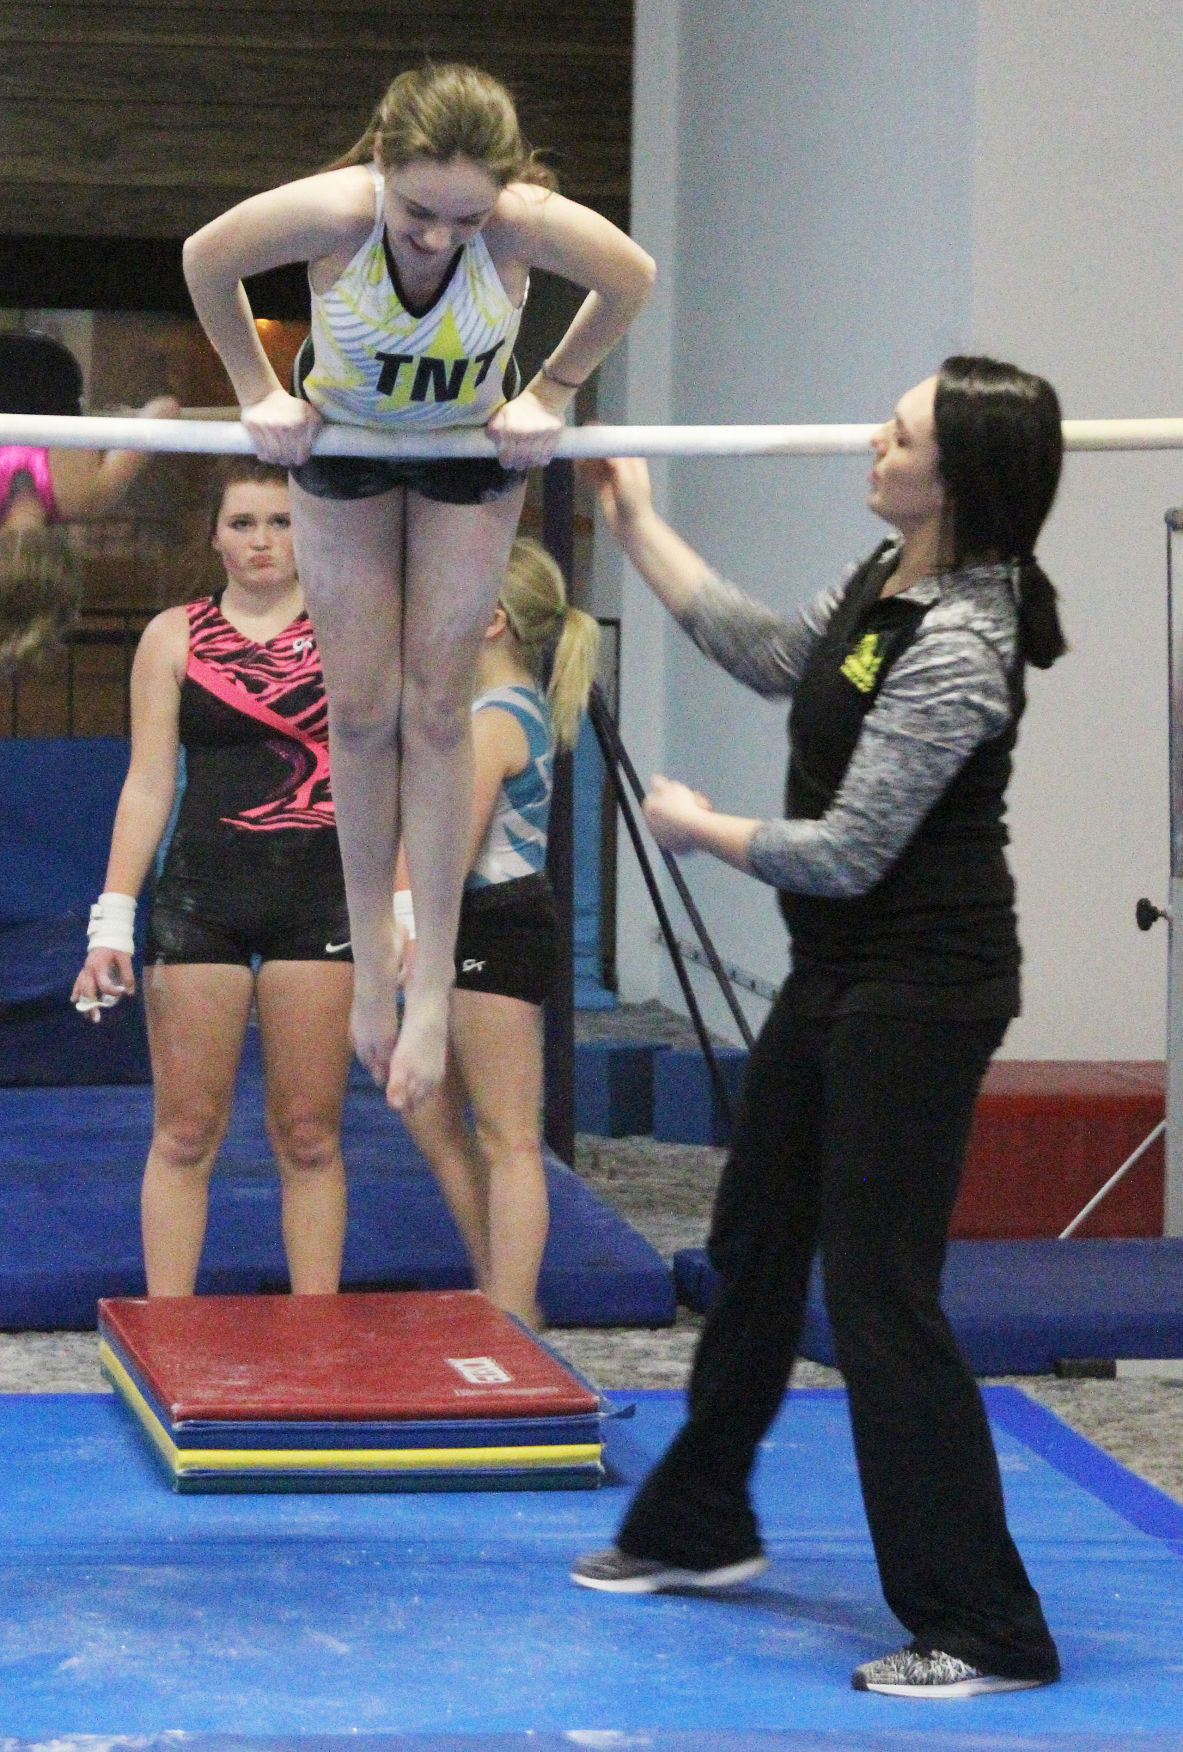 020417-star-news-gymnastics-3